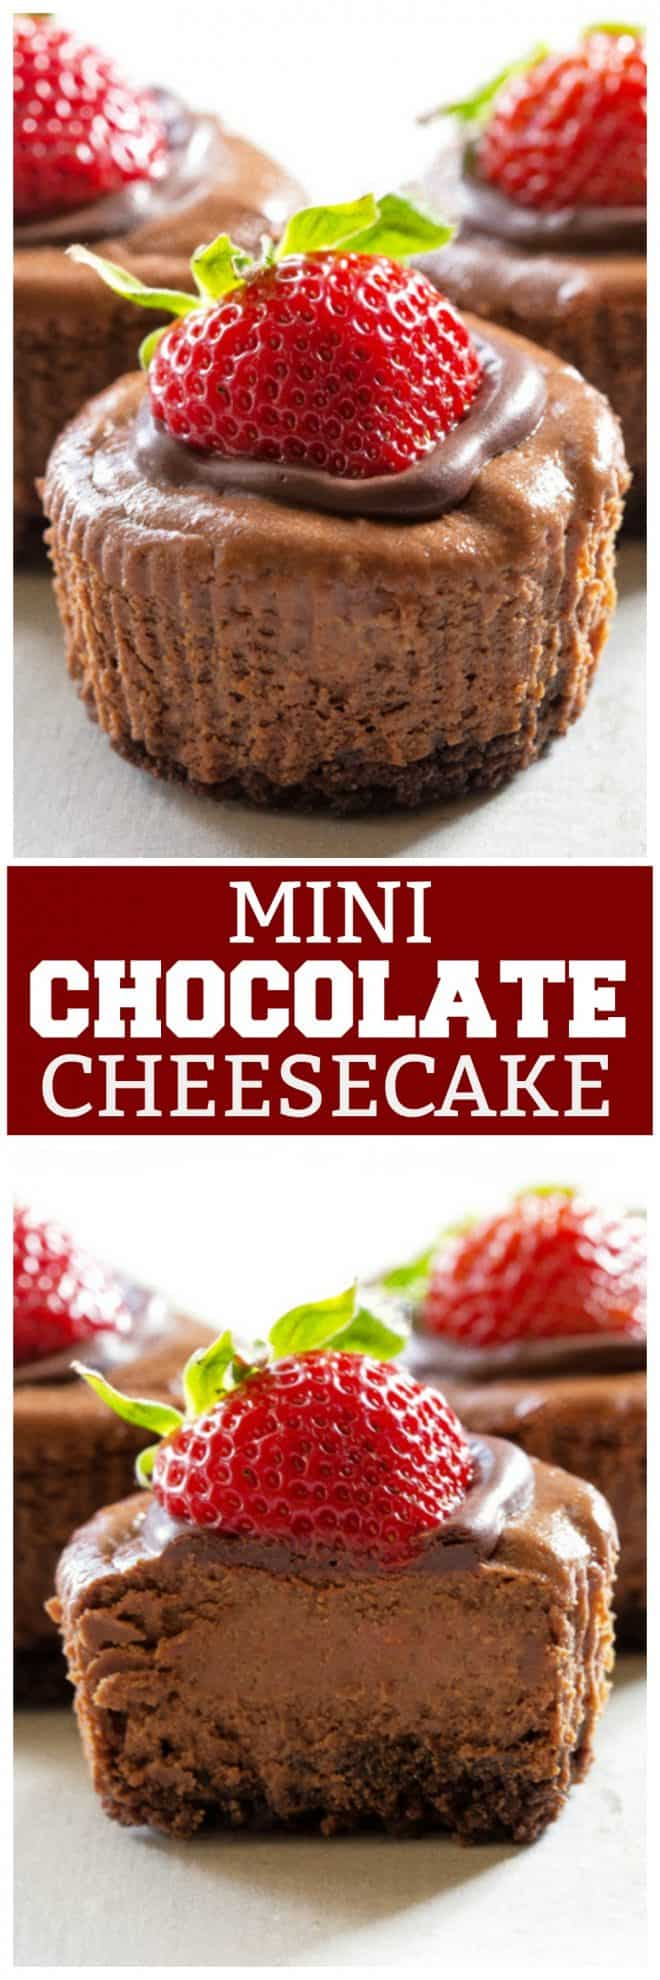 Mini Chocolate Cheesecakes